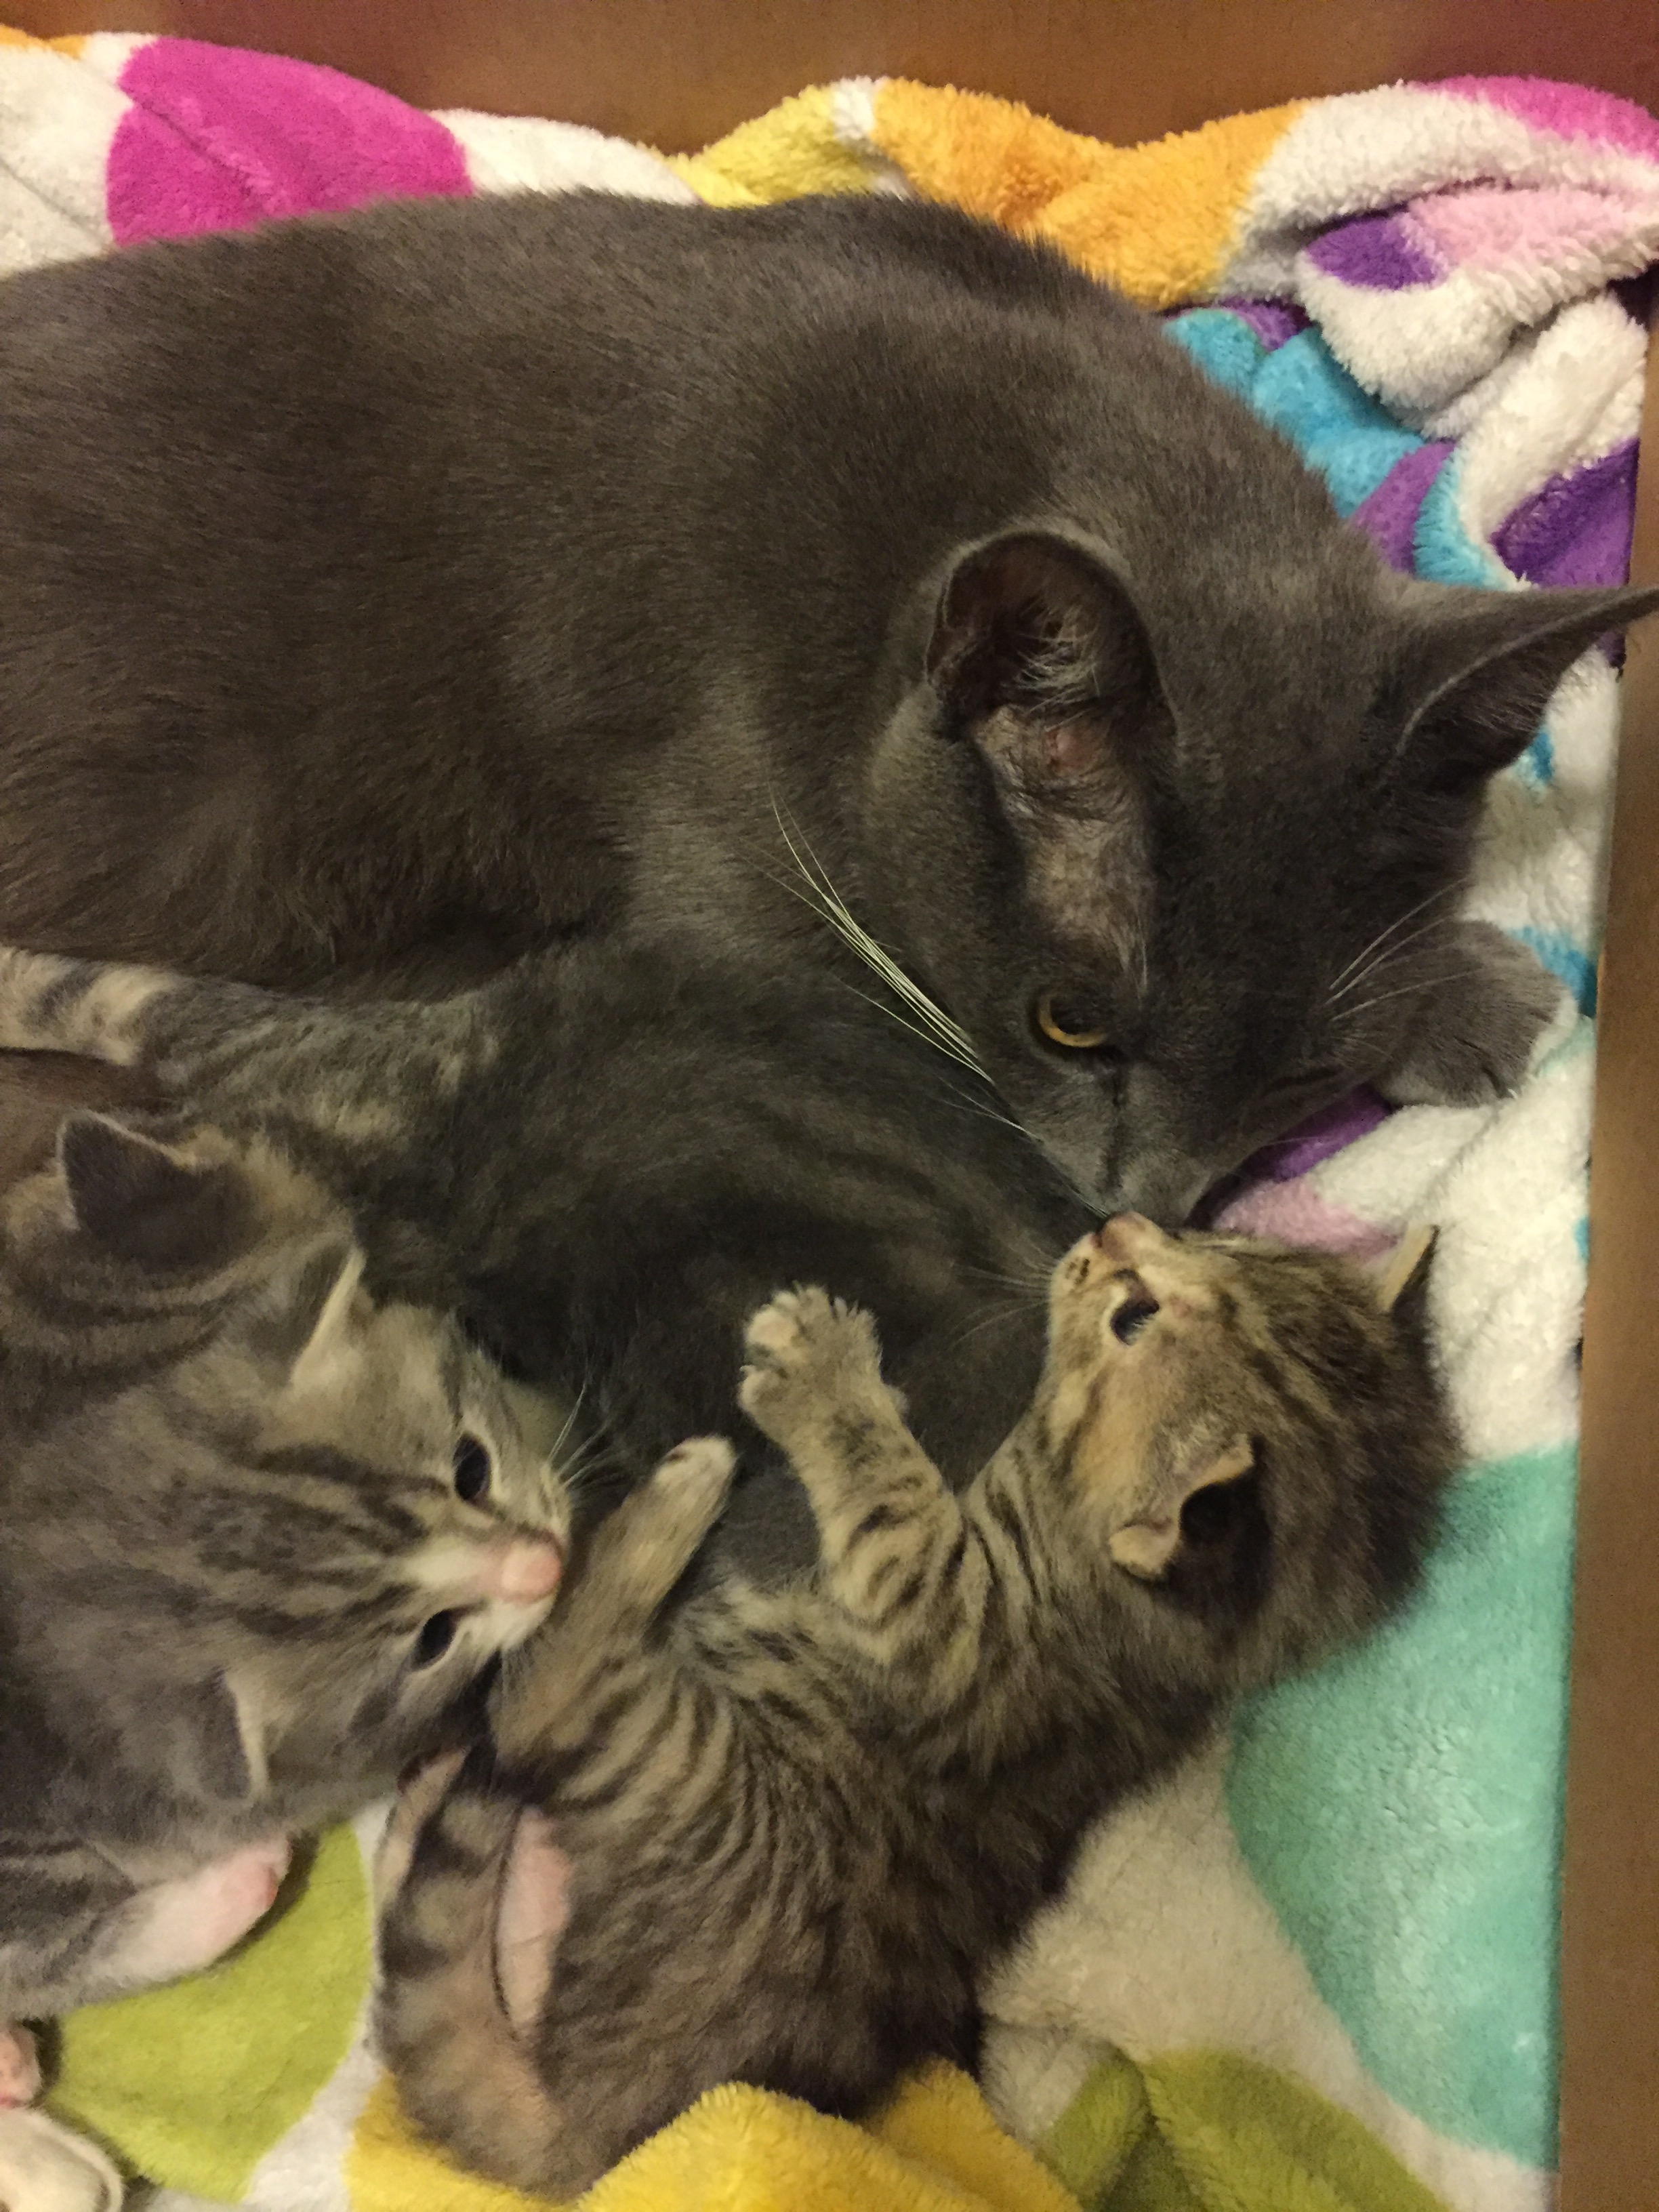 They are all beginning to play, and wrestle its uncoordinated and adorable